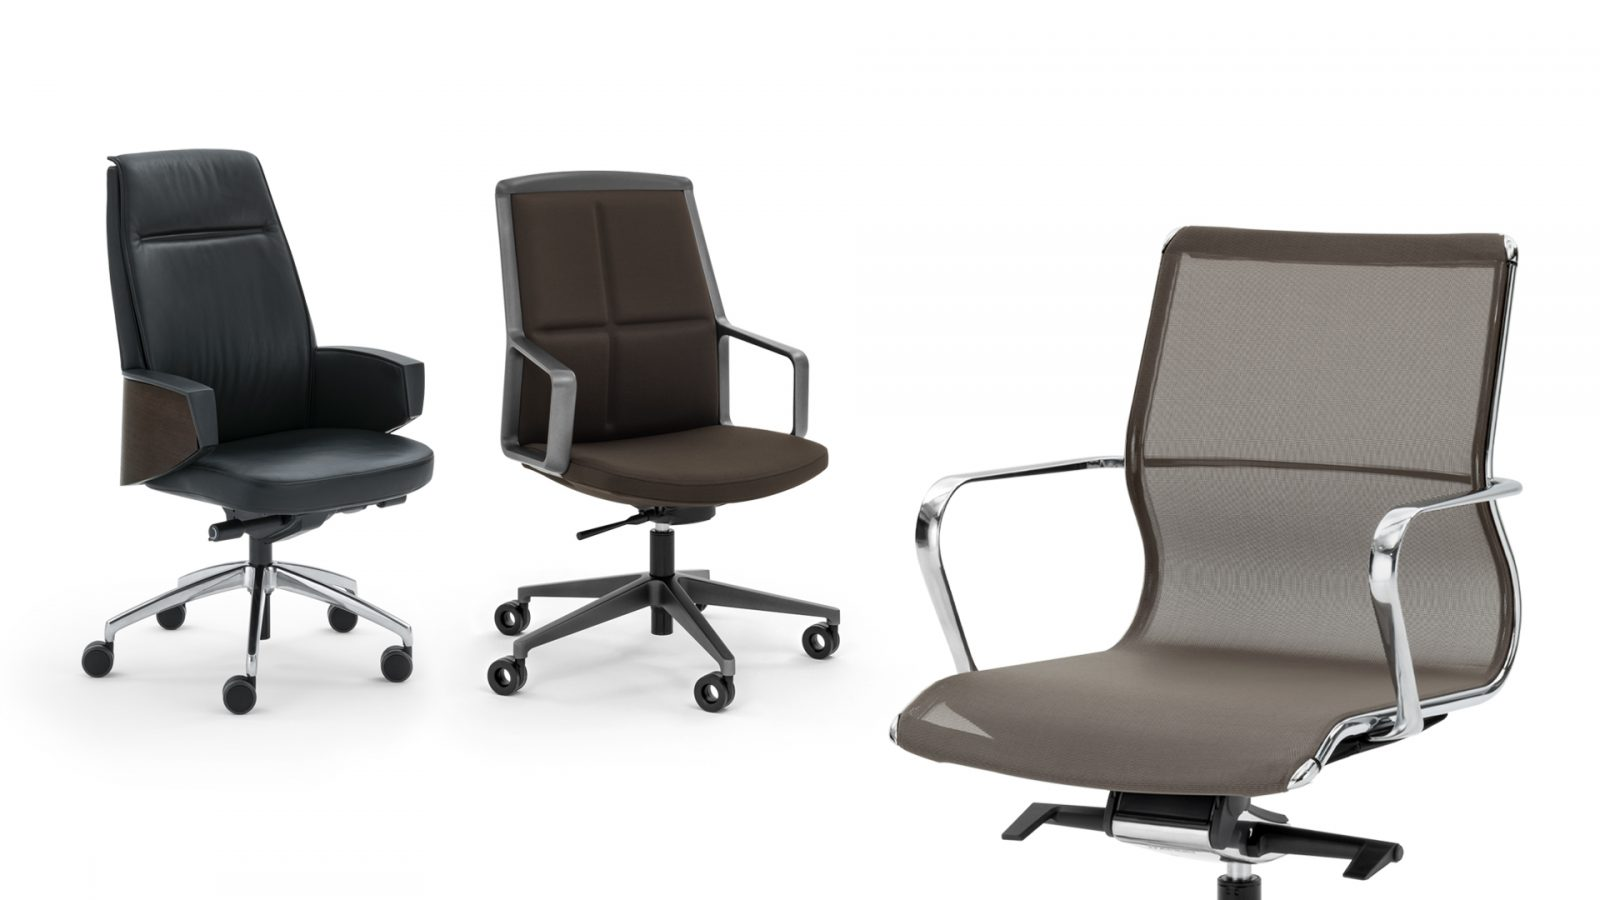 Manager chairs